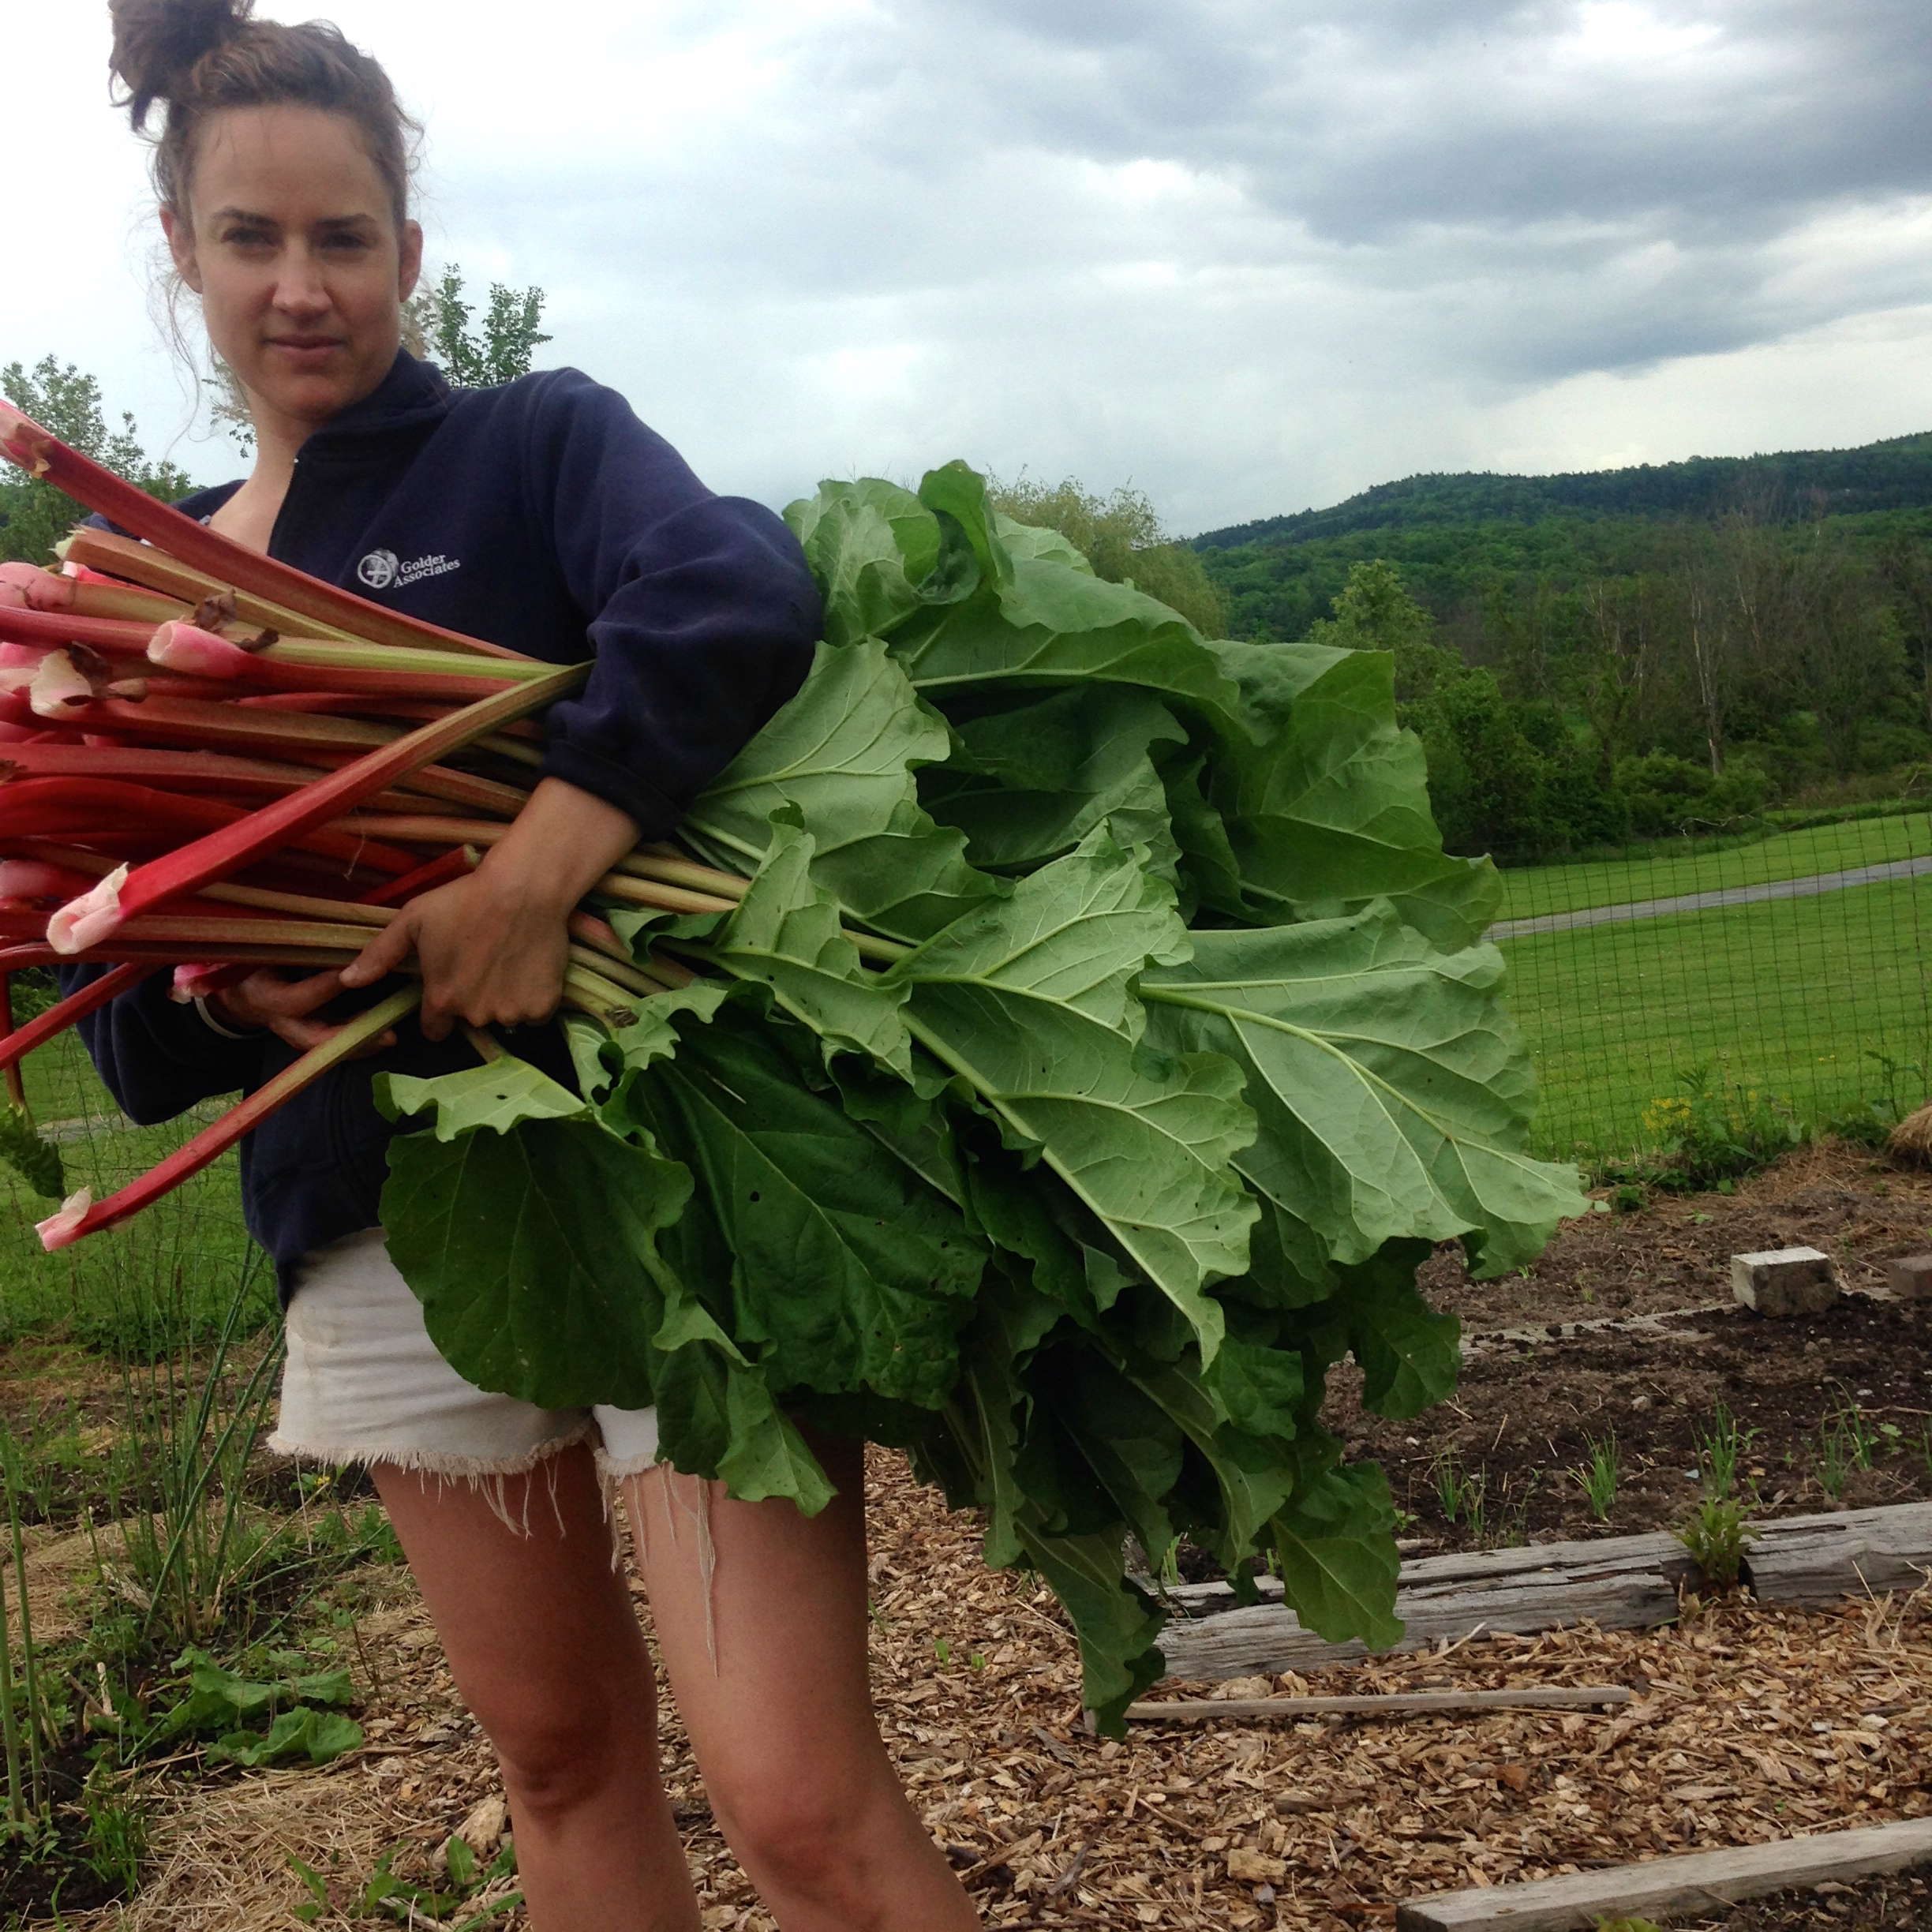 I look like what the cat drug in, as usual when gardening, but DAMN if my rhubarb ain't purty!